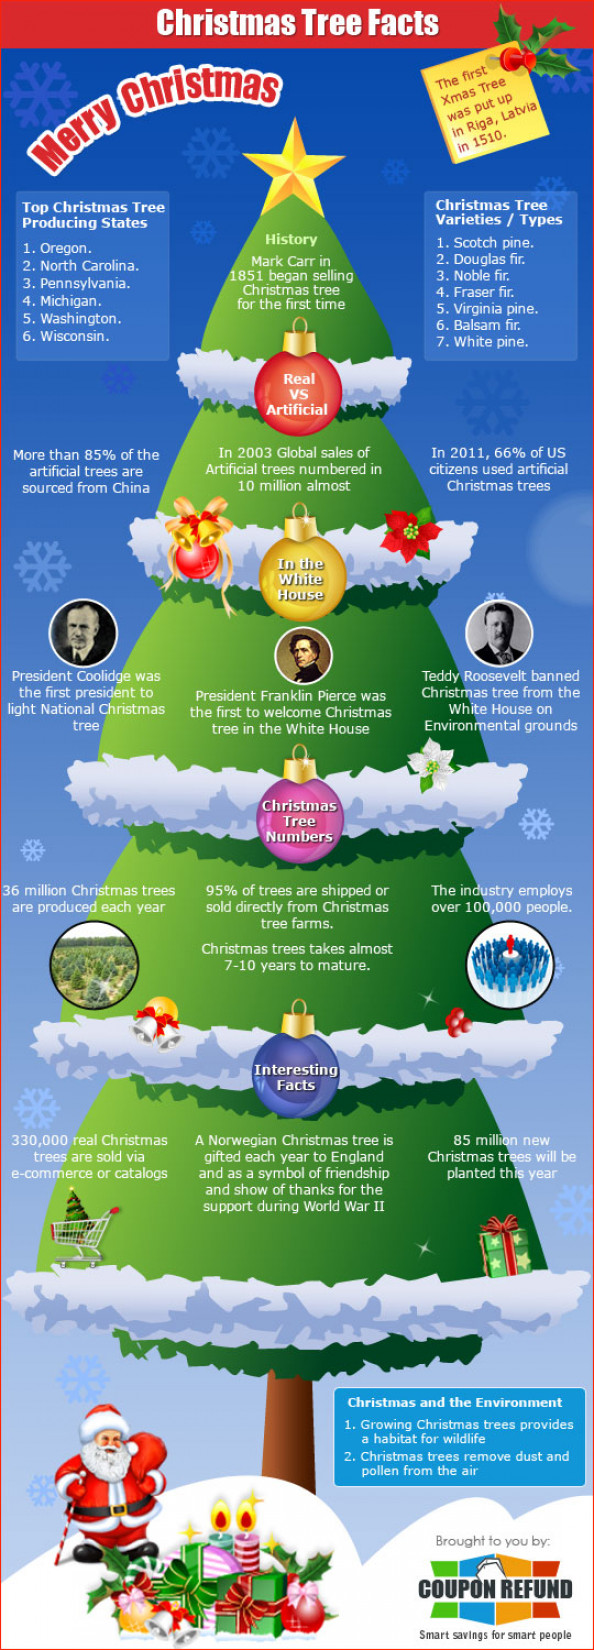 Christmas Tree Facts Infographic